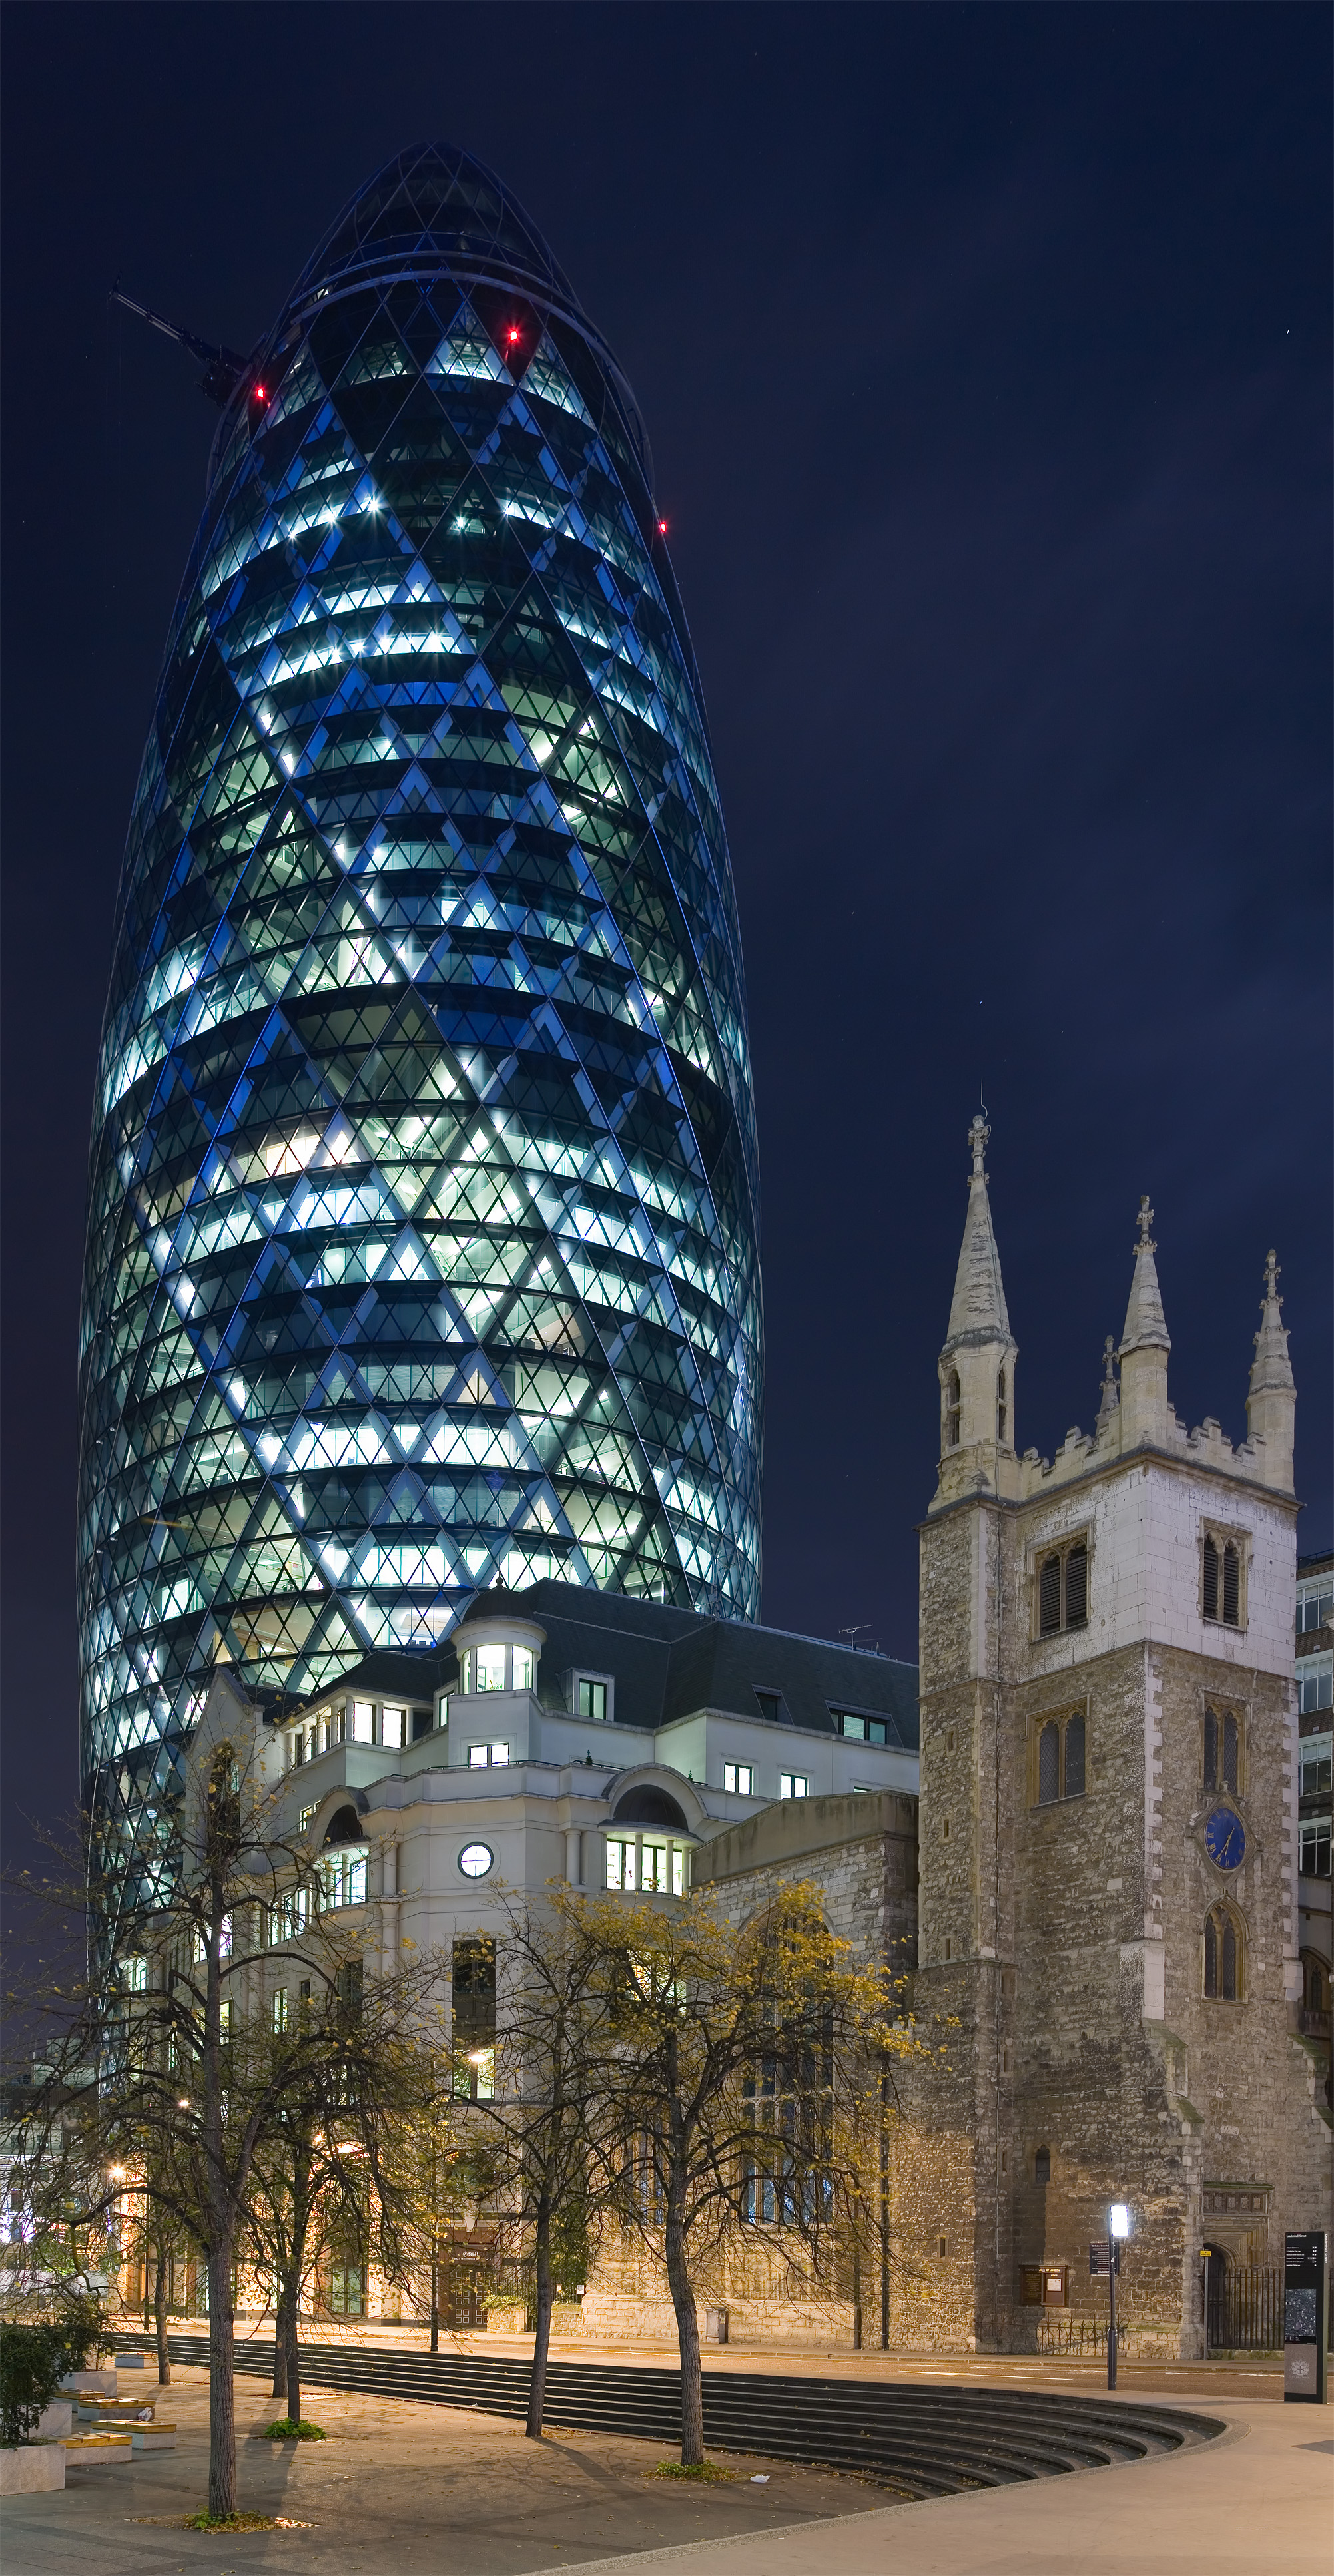 file30 st mary axe the gherkin from leadenhall st nov